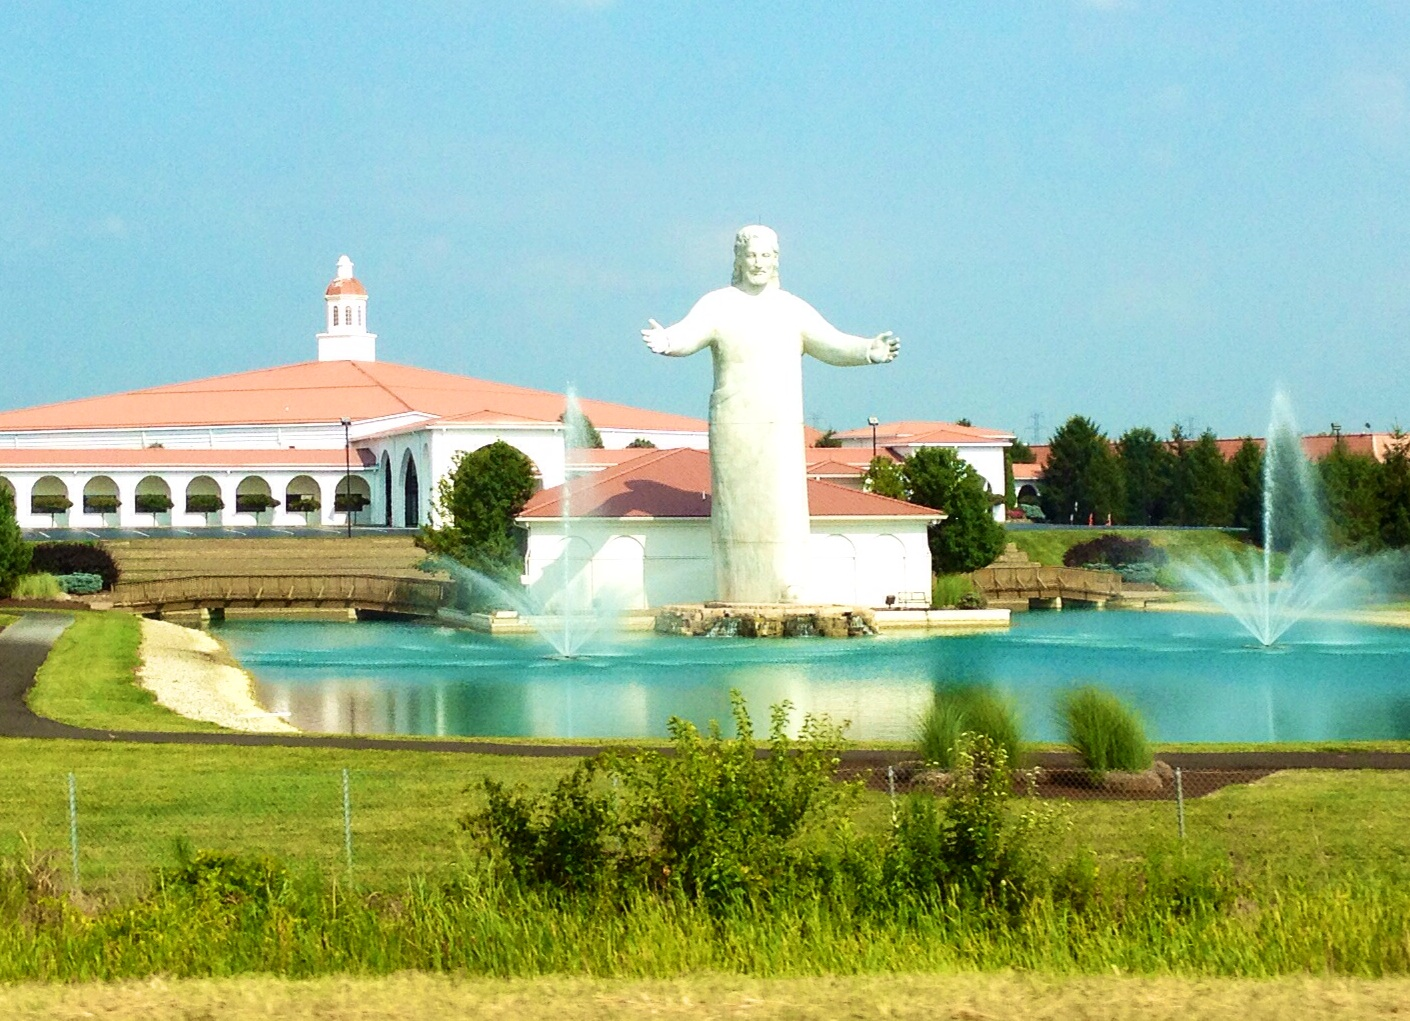 This giant 50 ft. Jesus blesses I-75 near between Cincinnati and Dayton. Apparently, it replaced an even bigger Jesus that got struck by lightning (am I the only one that thinks that's strange?).